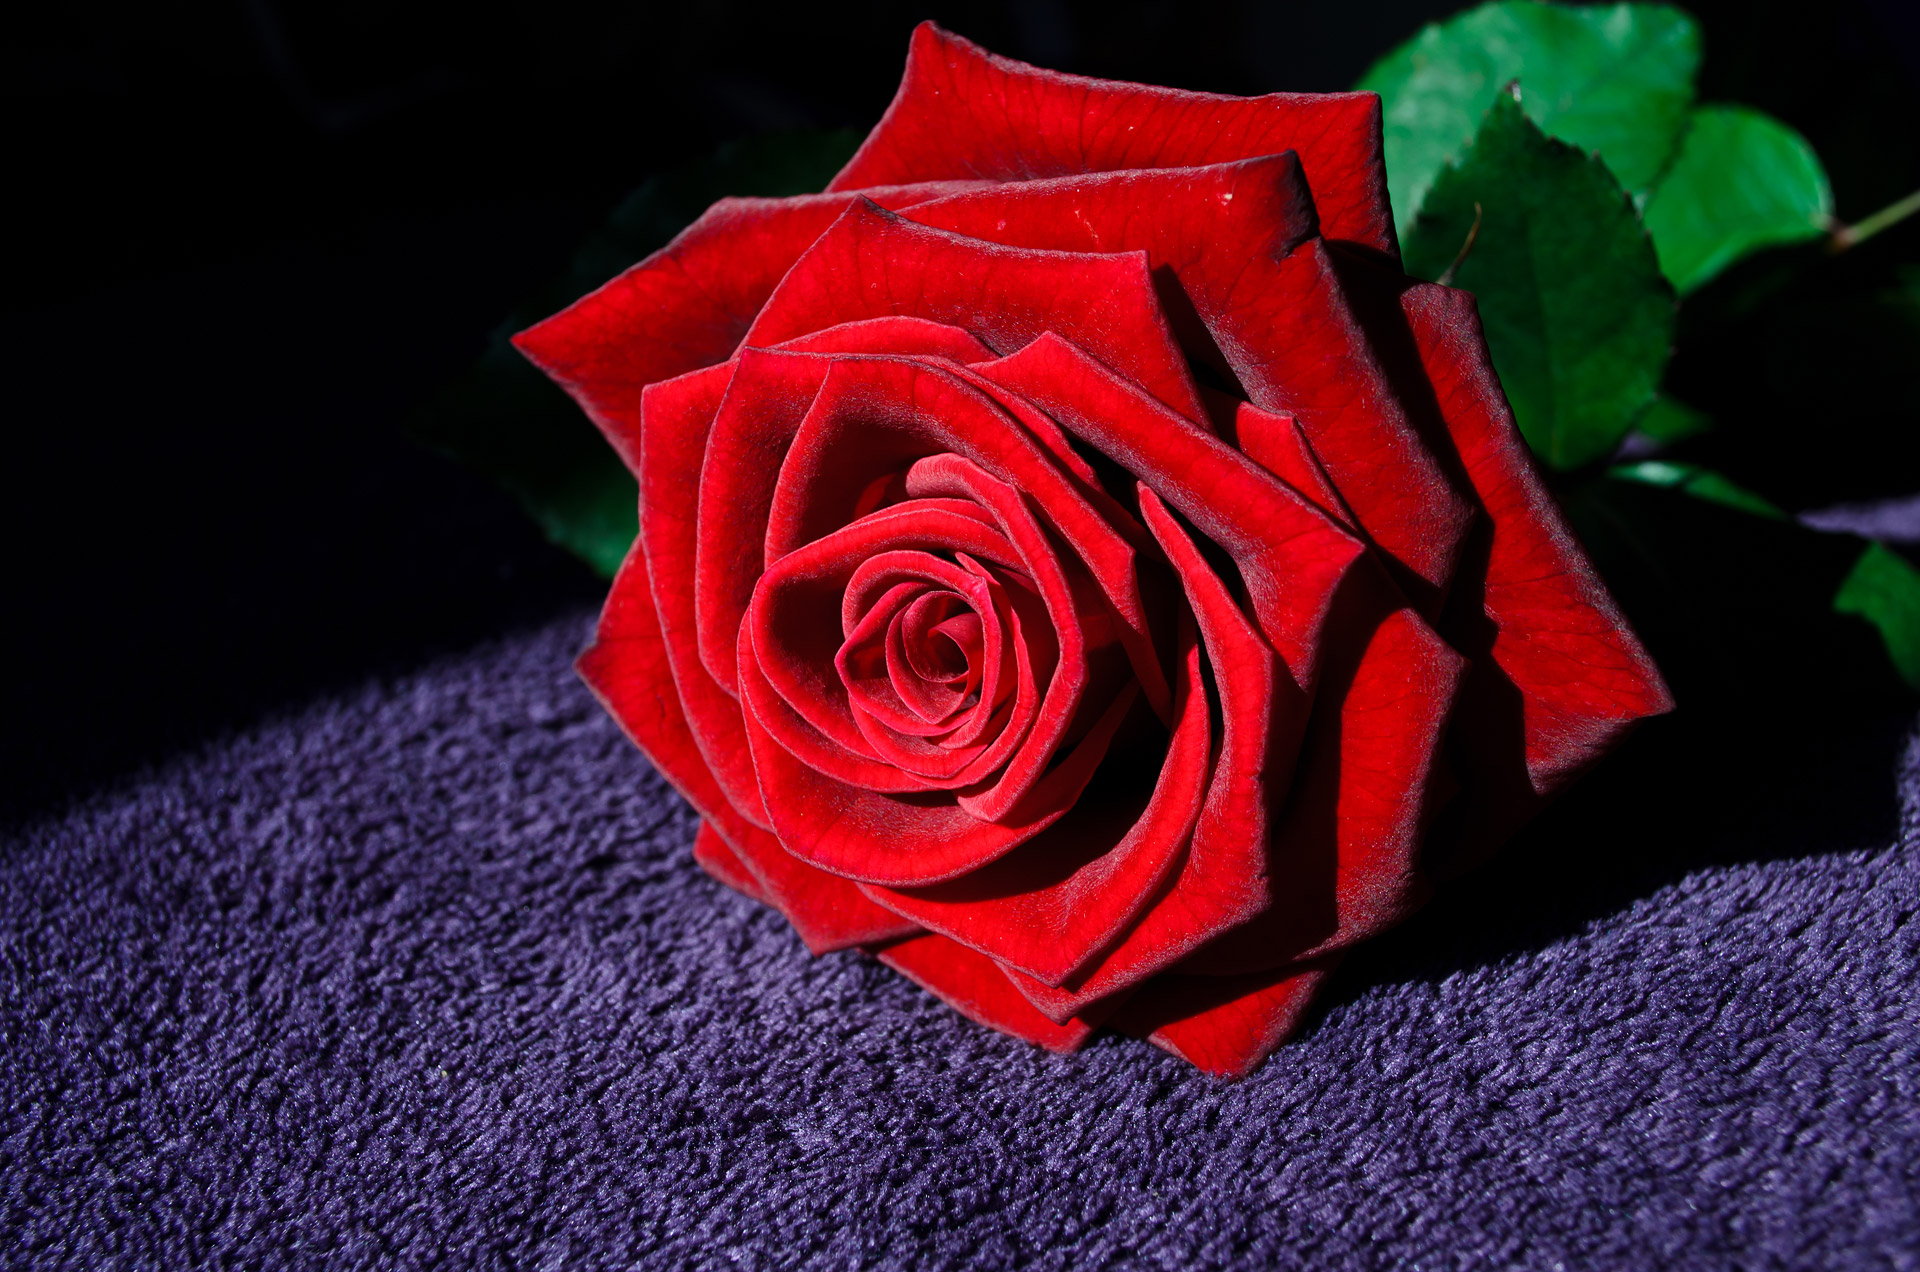 Red Rose Free Stock Photo - Public Domain Pictures